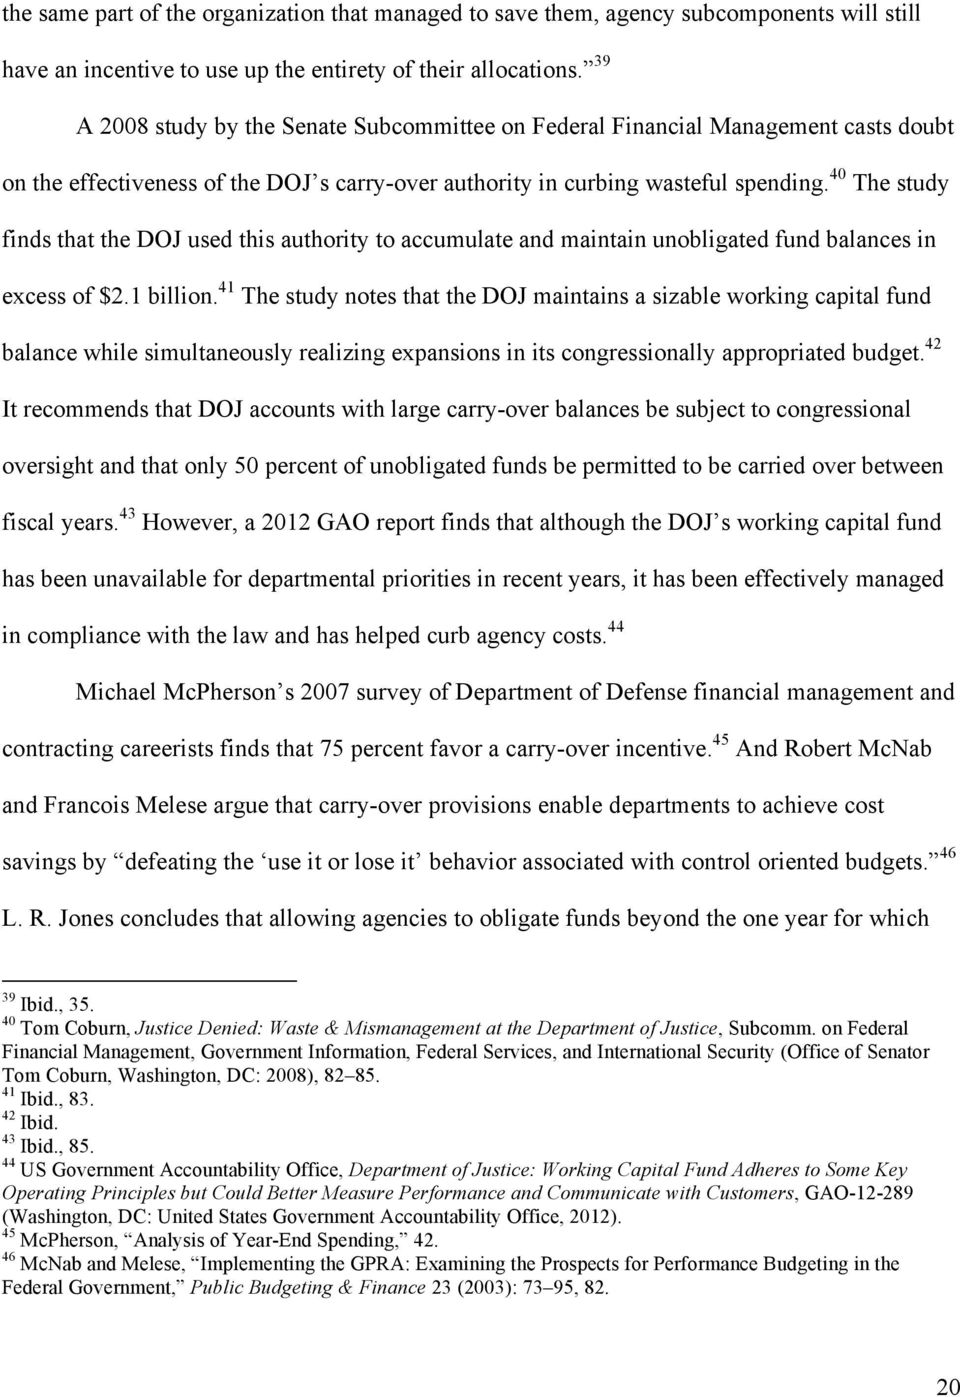 40 The study finds that the DOJ used this authority to accumulate and maintain unobligated fund balances in excess of $2.1 billion.